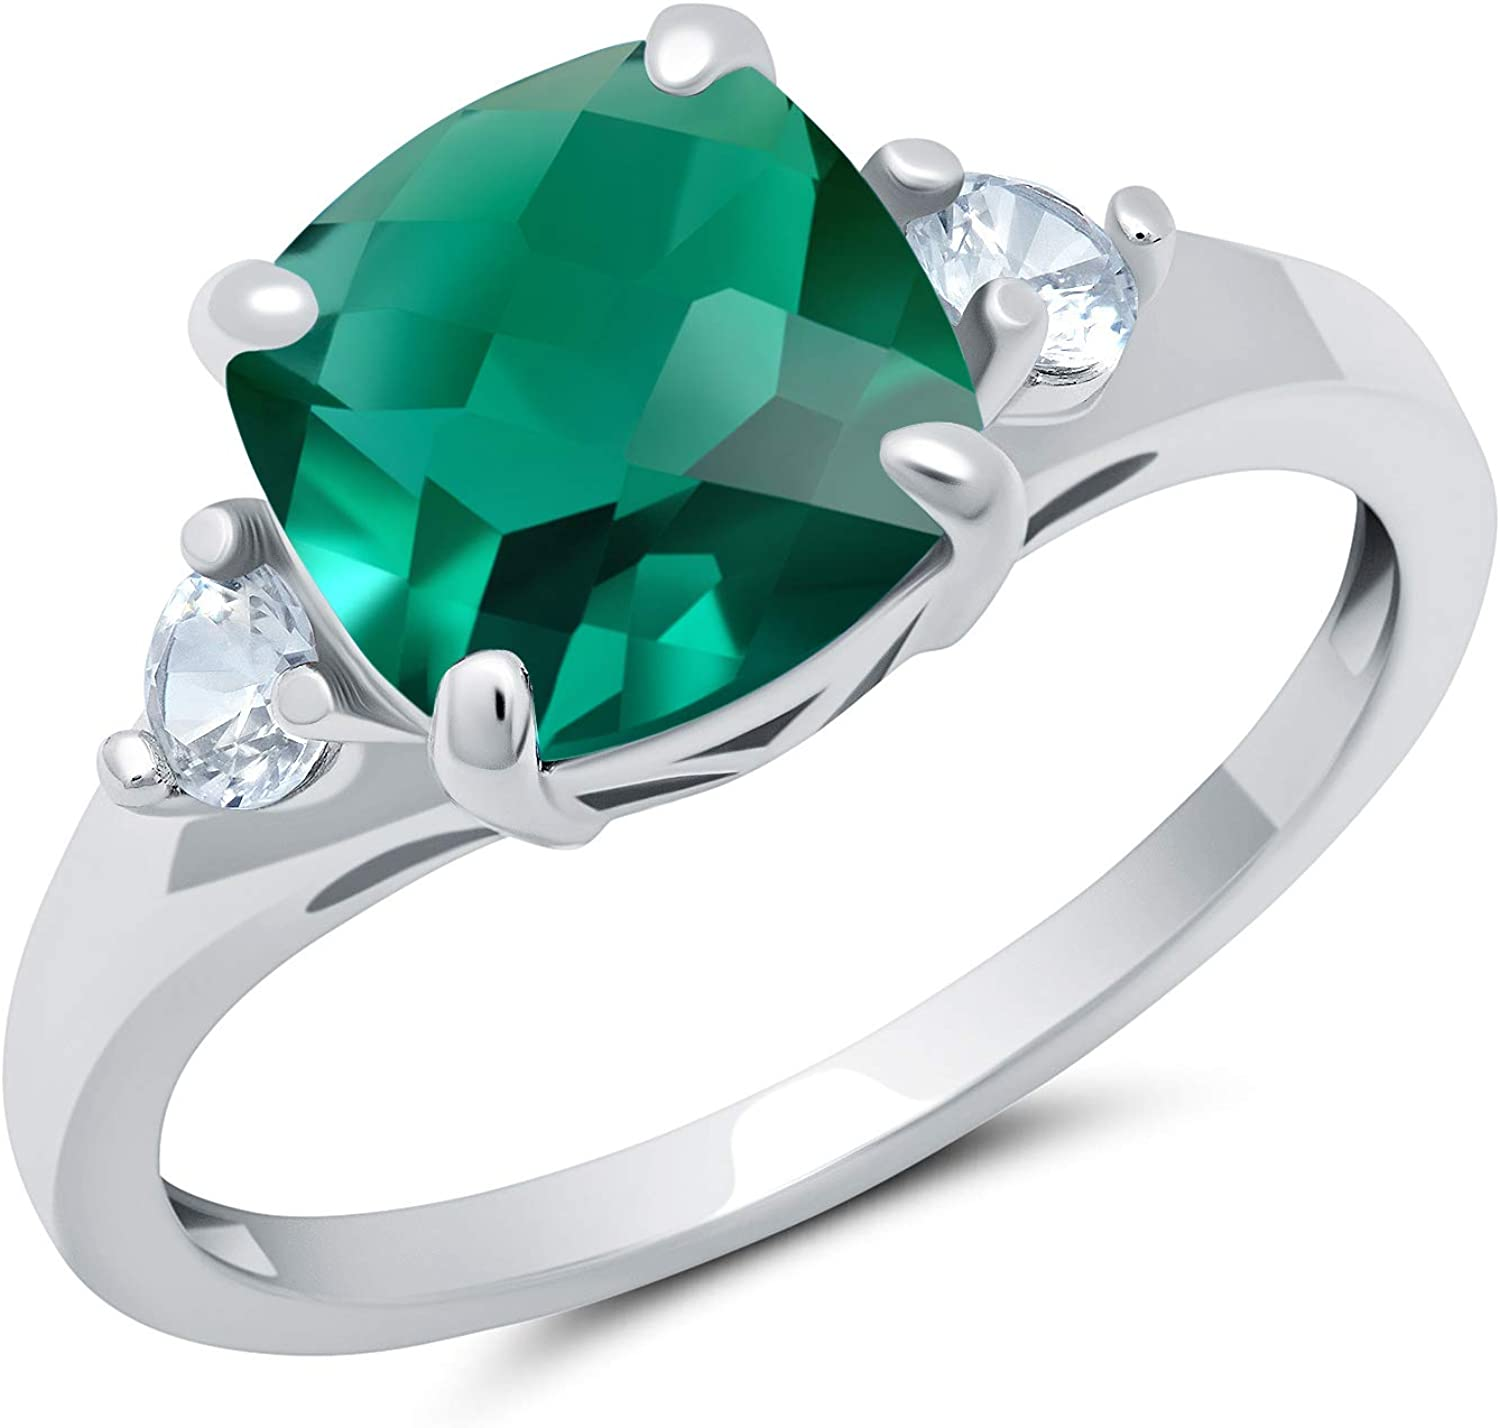 Solid 10K Yellow or mart White Gold Cushion Created Popular standard B Cut May Emerald